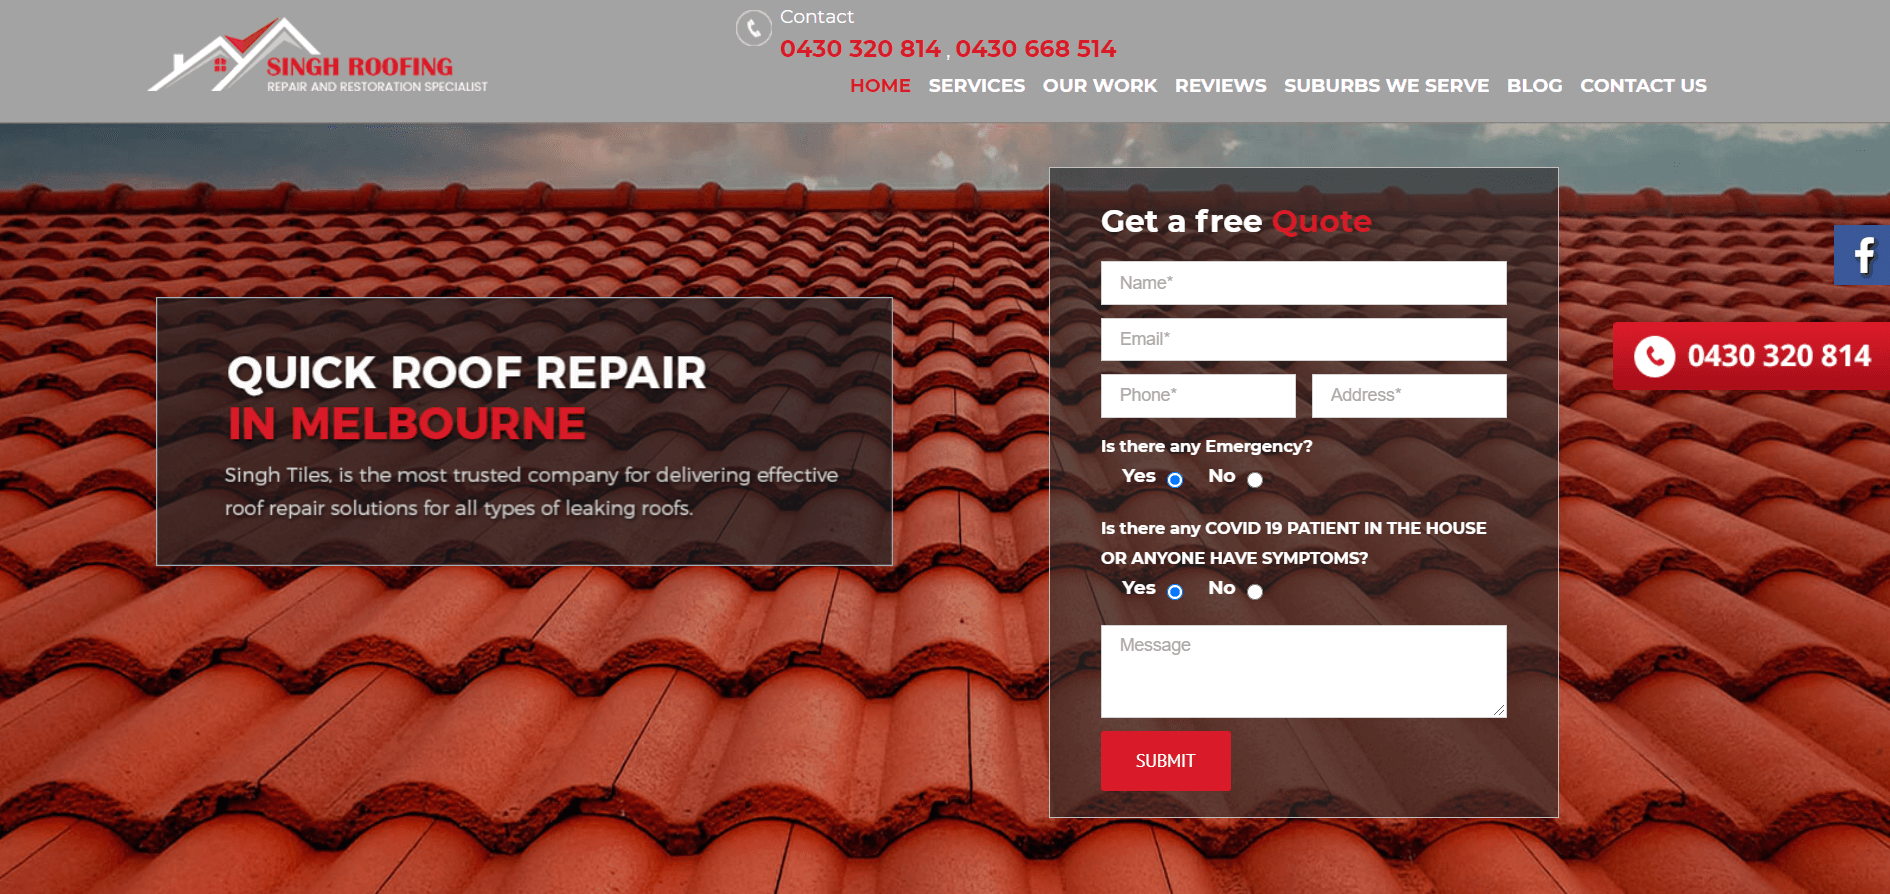 singh roofing